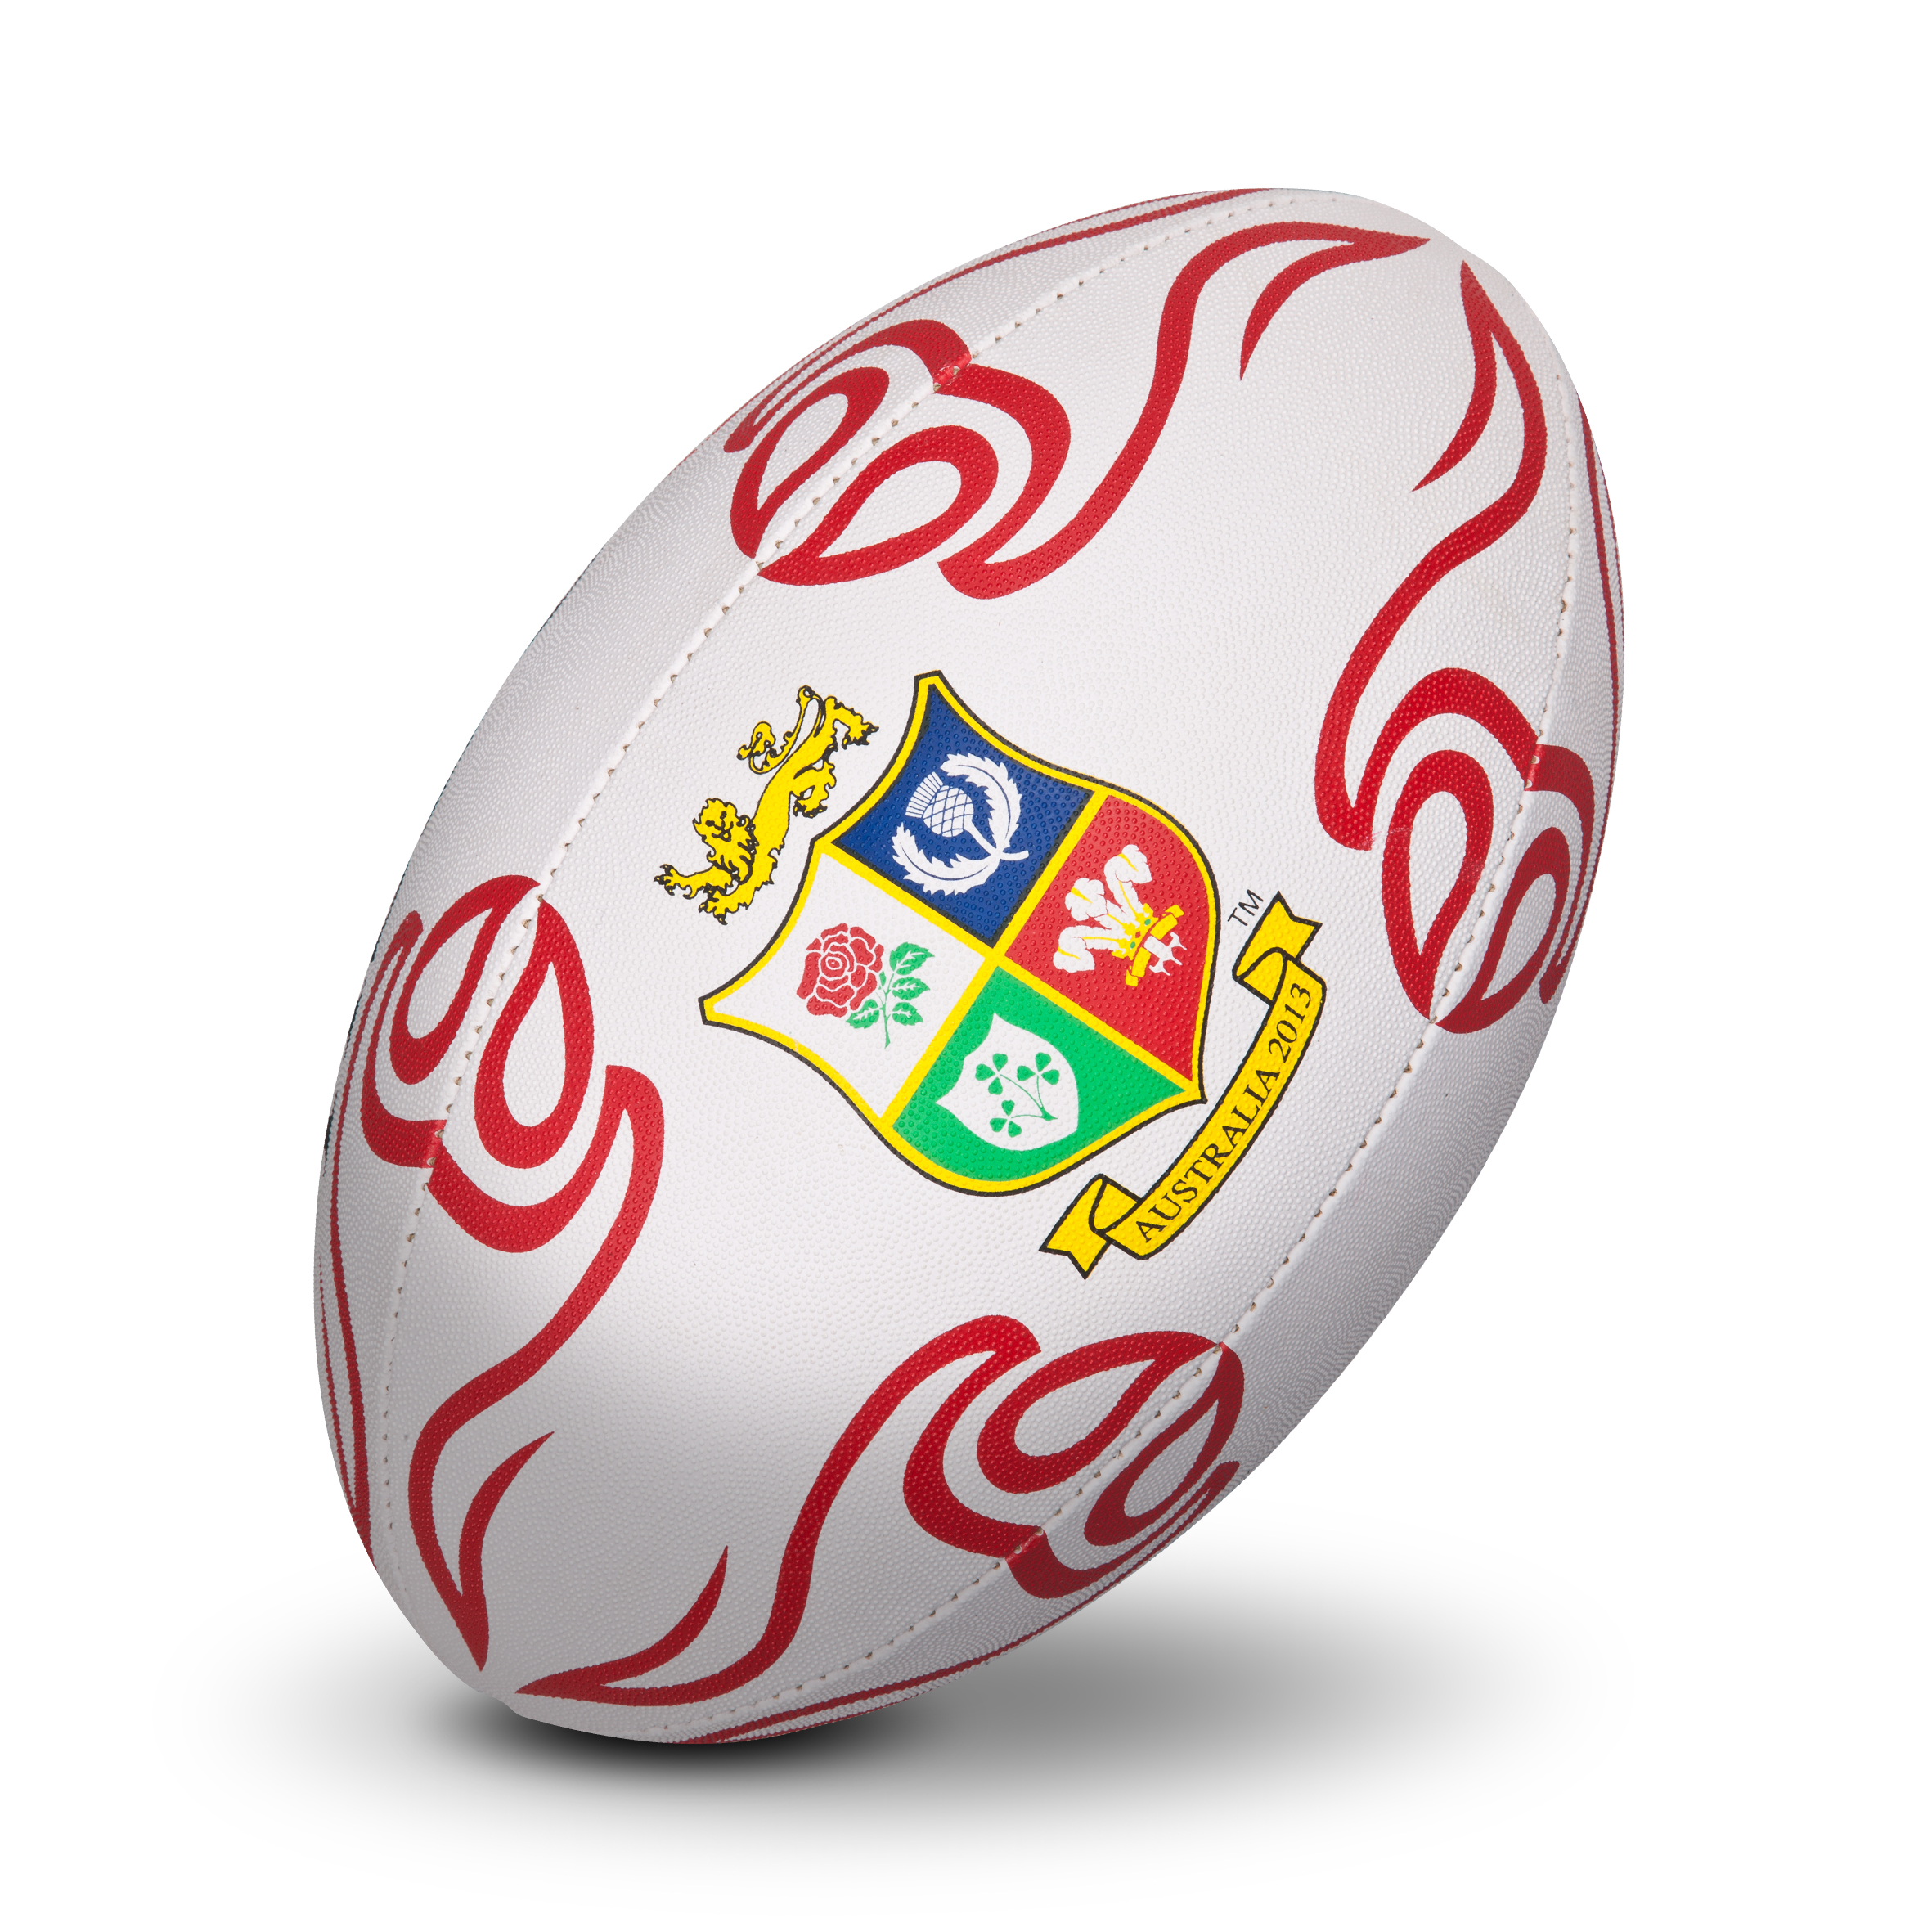 British and Irish Lions Supporters Rugby Ball - White/Red